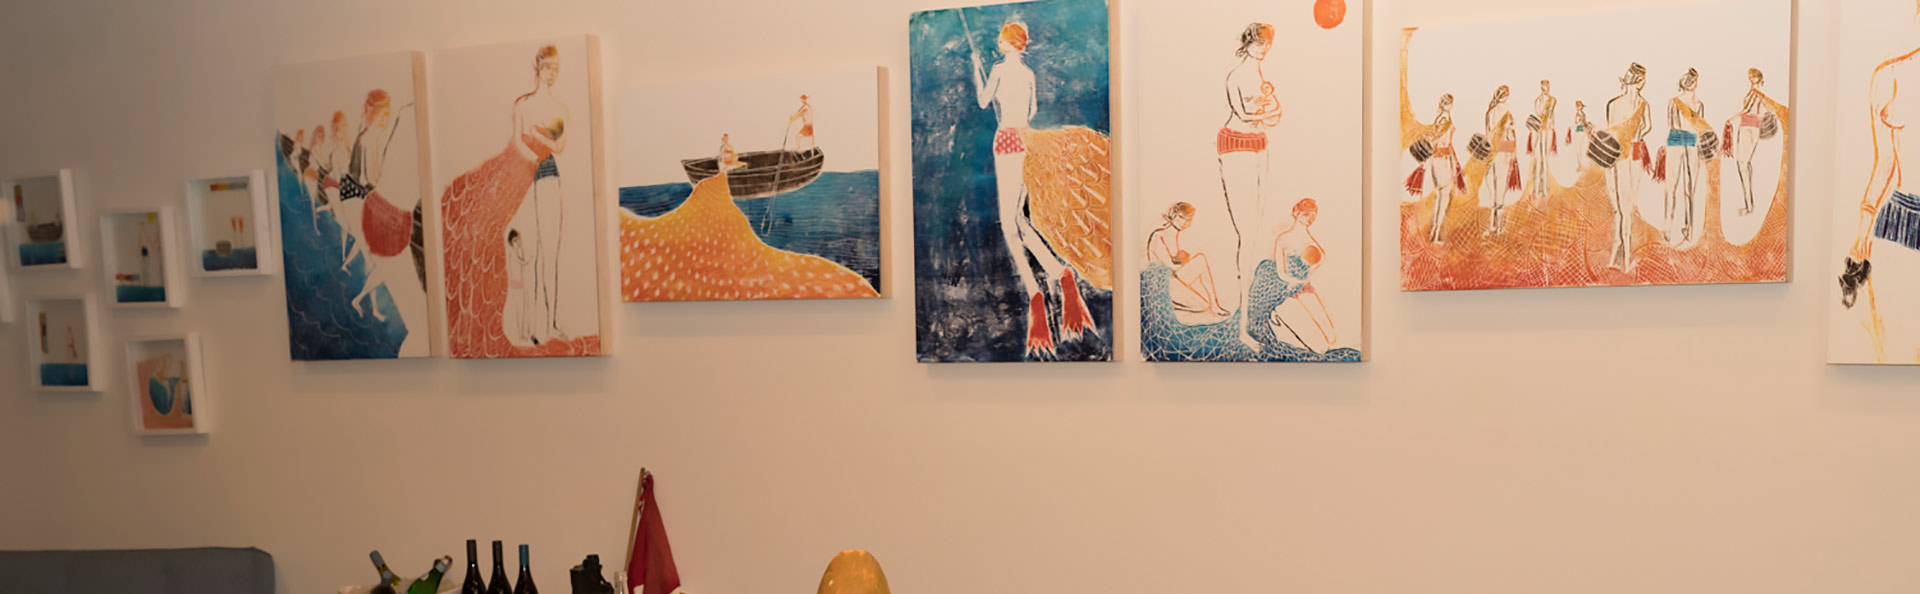 Two mermaids, one workshop, a lot of creativity